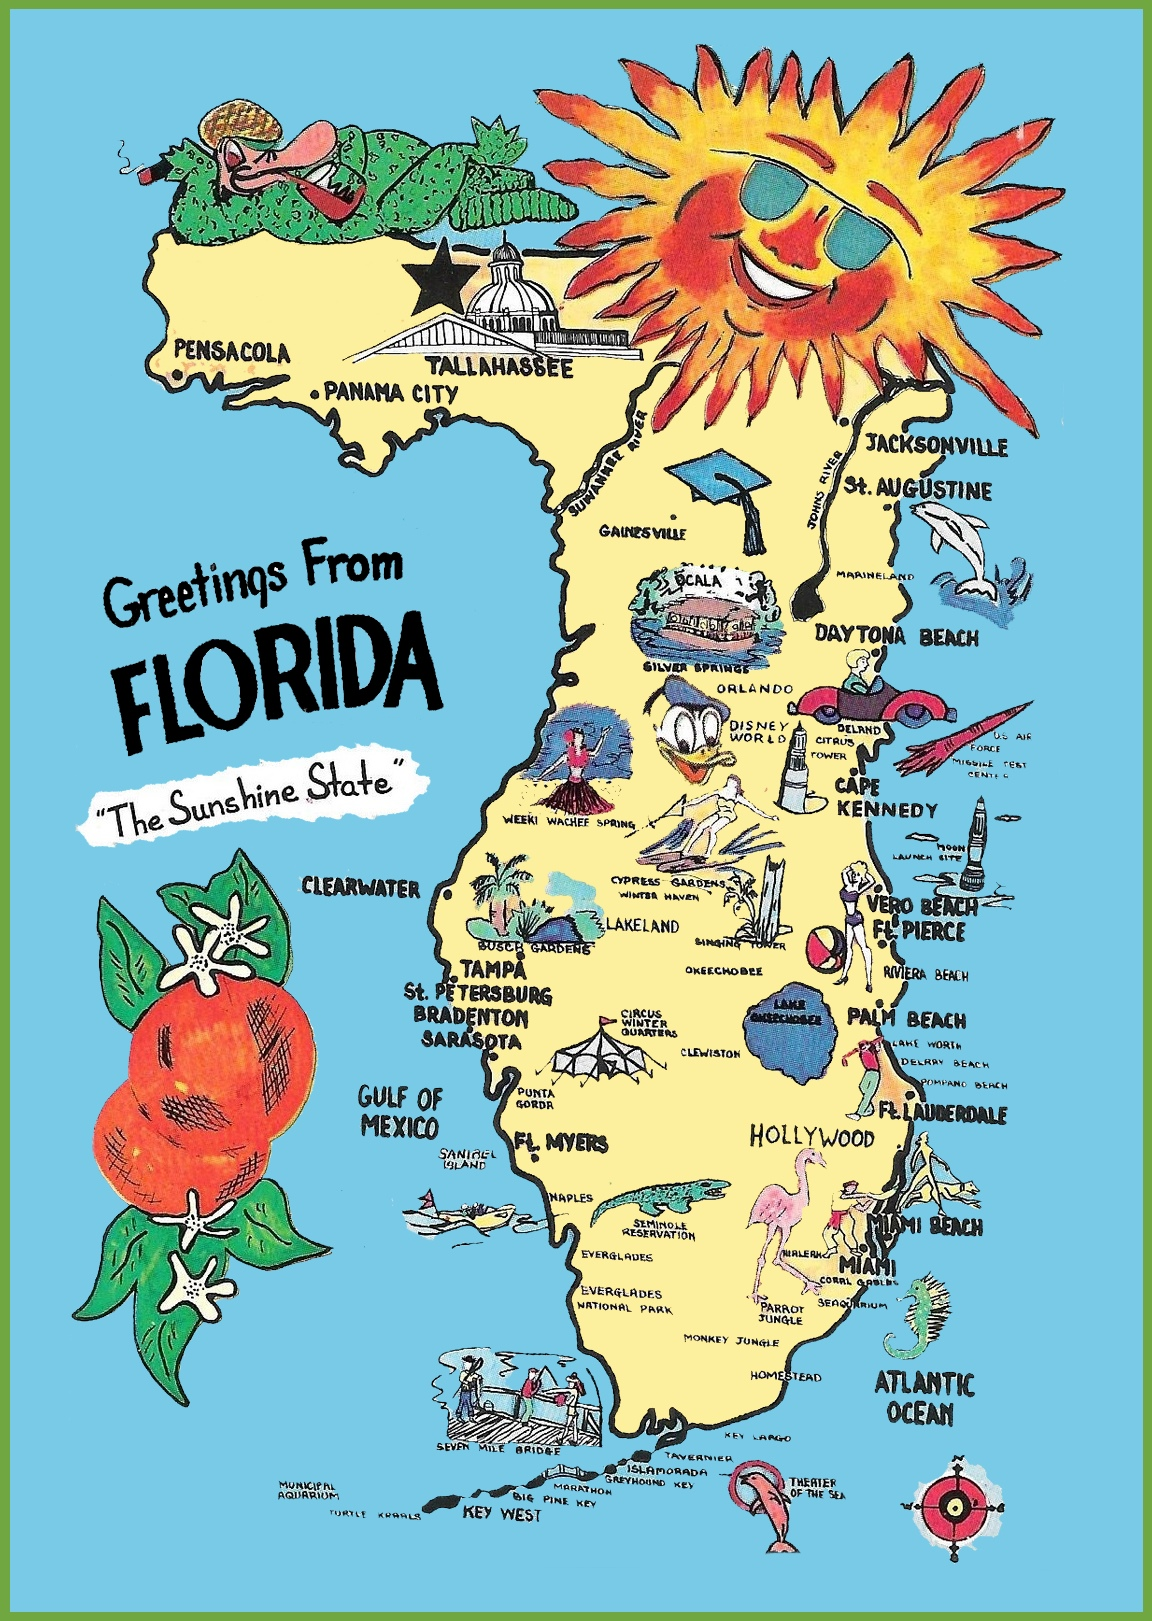 Florida On Usa Map.Florida State Maps Usa Maps Of Florida Fl